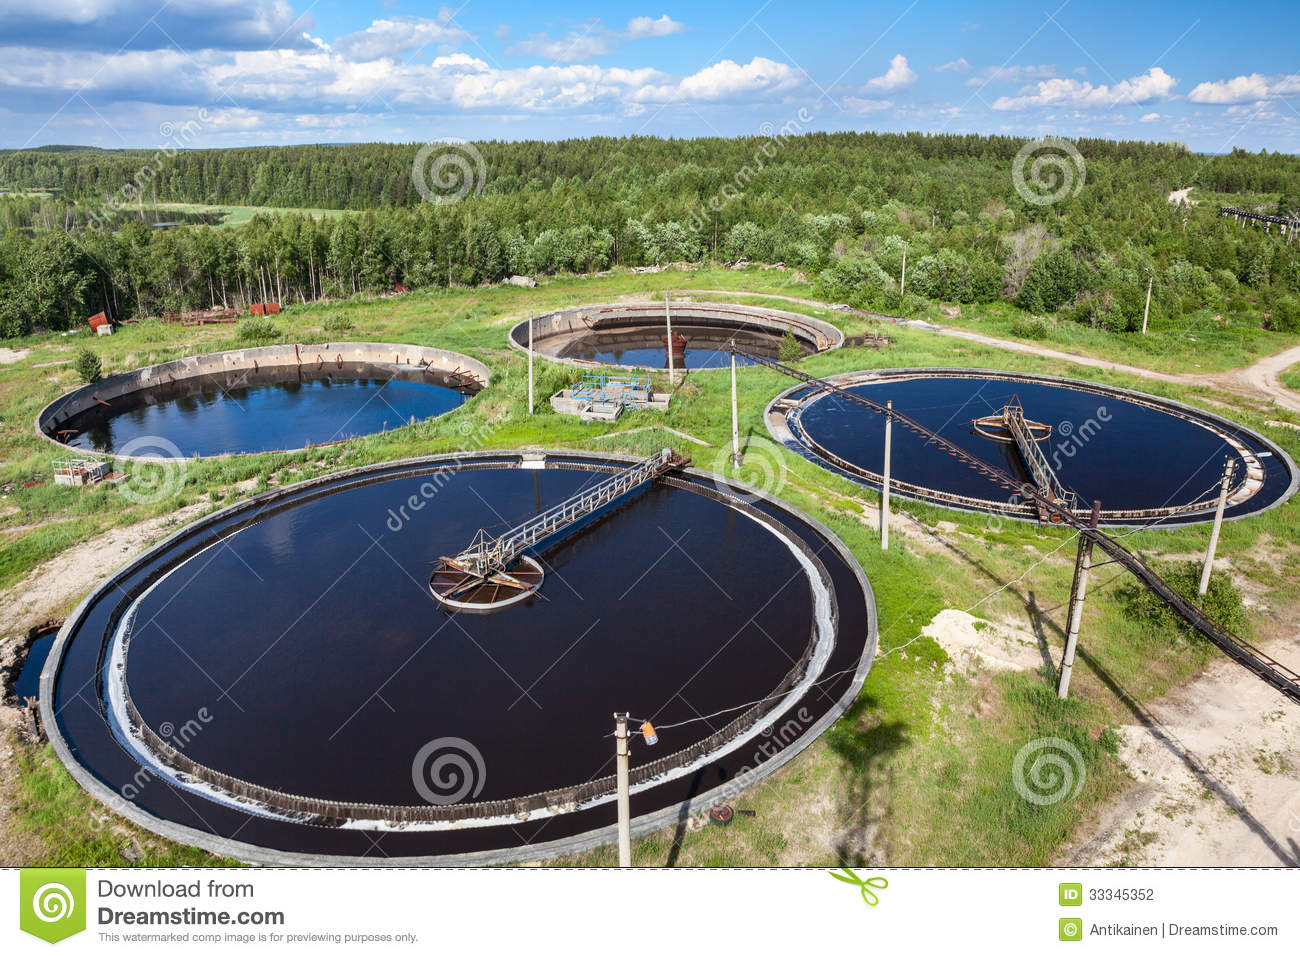 Download Aerial View Of Industrial Sewage Treatment Plant Stock Photo - Image of plant, circular: 33345352